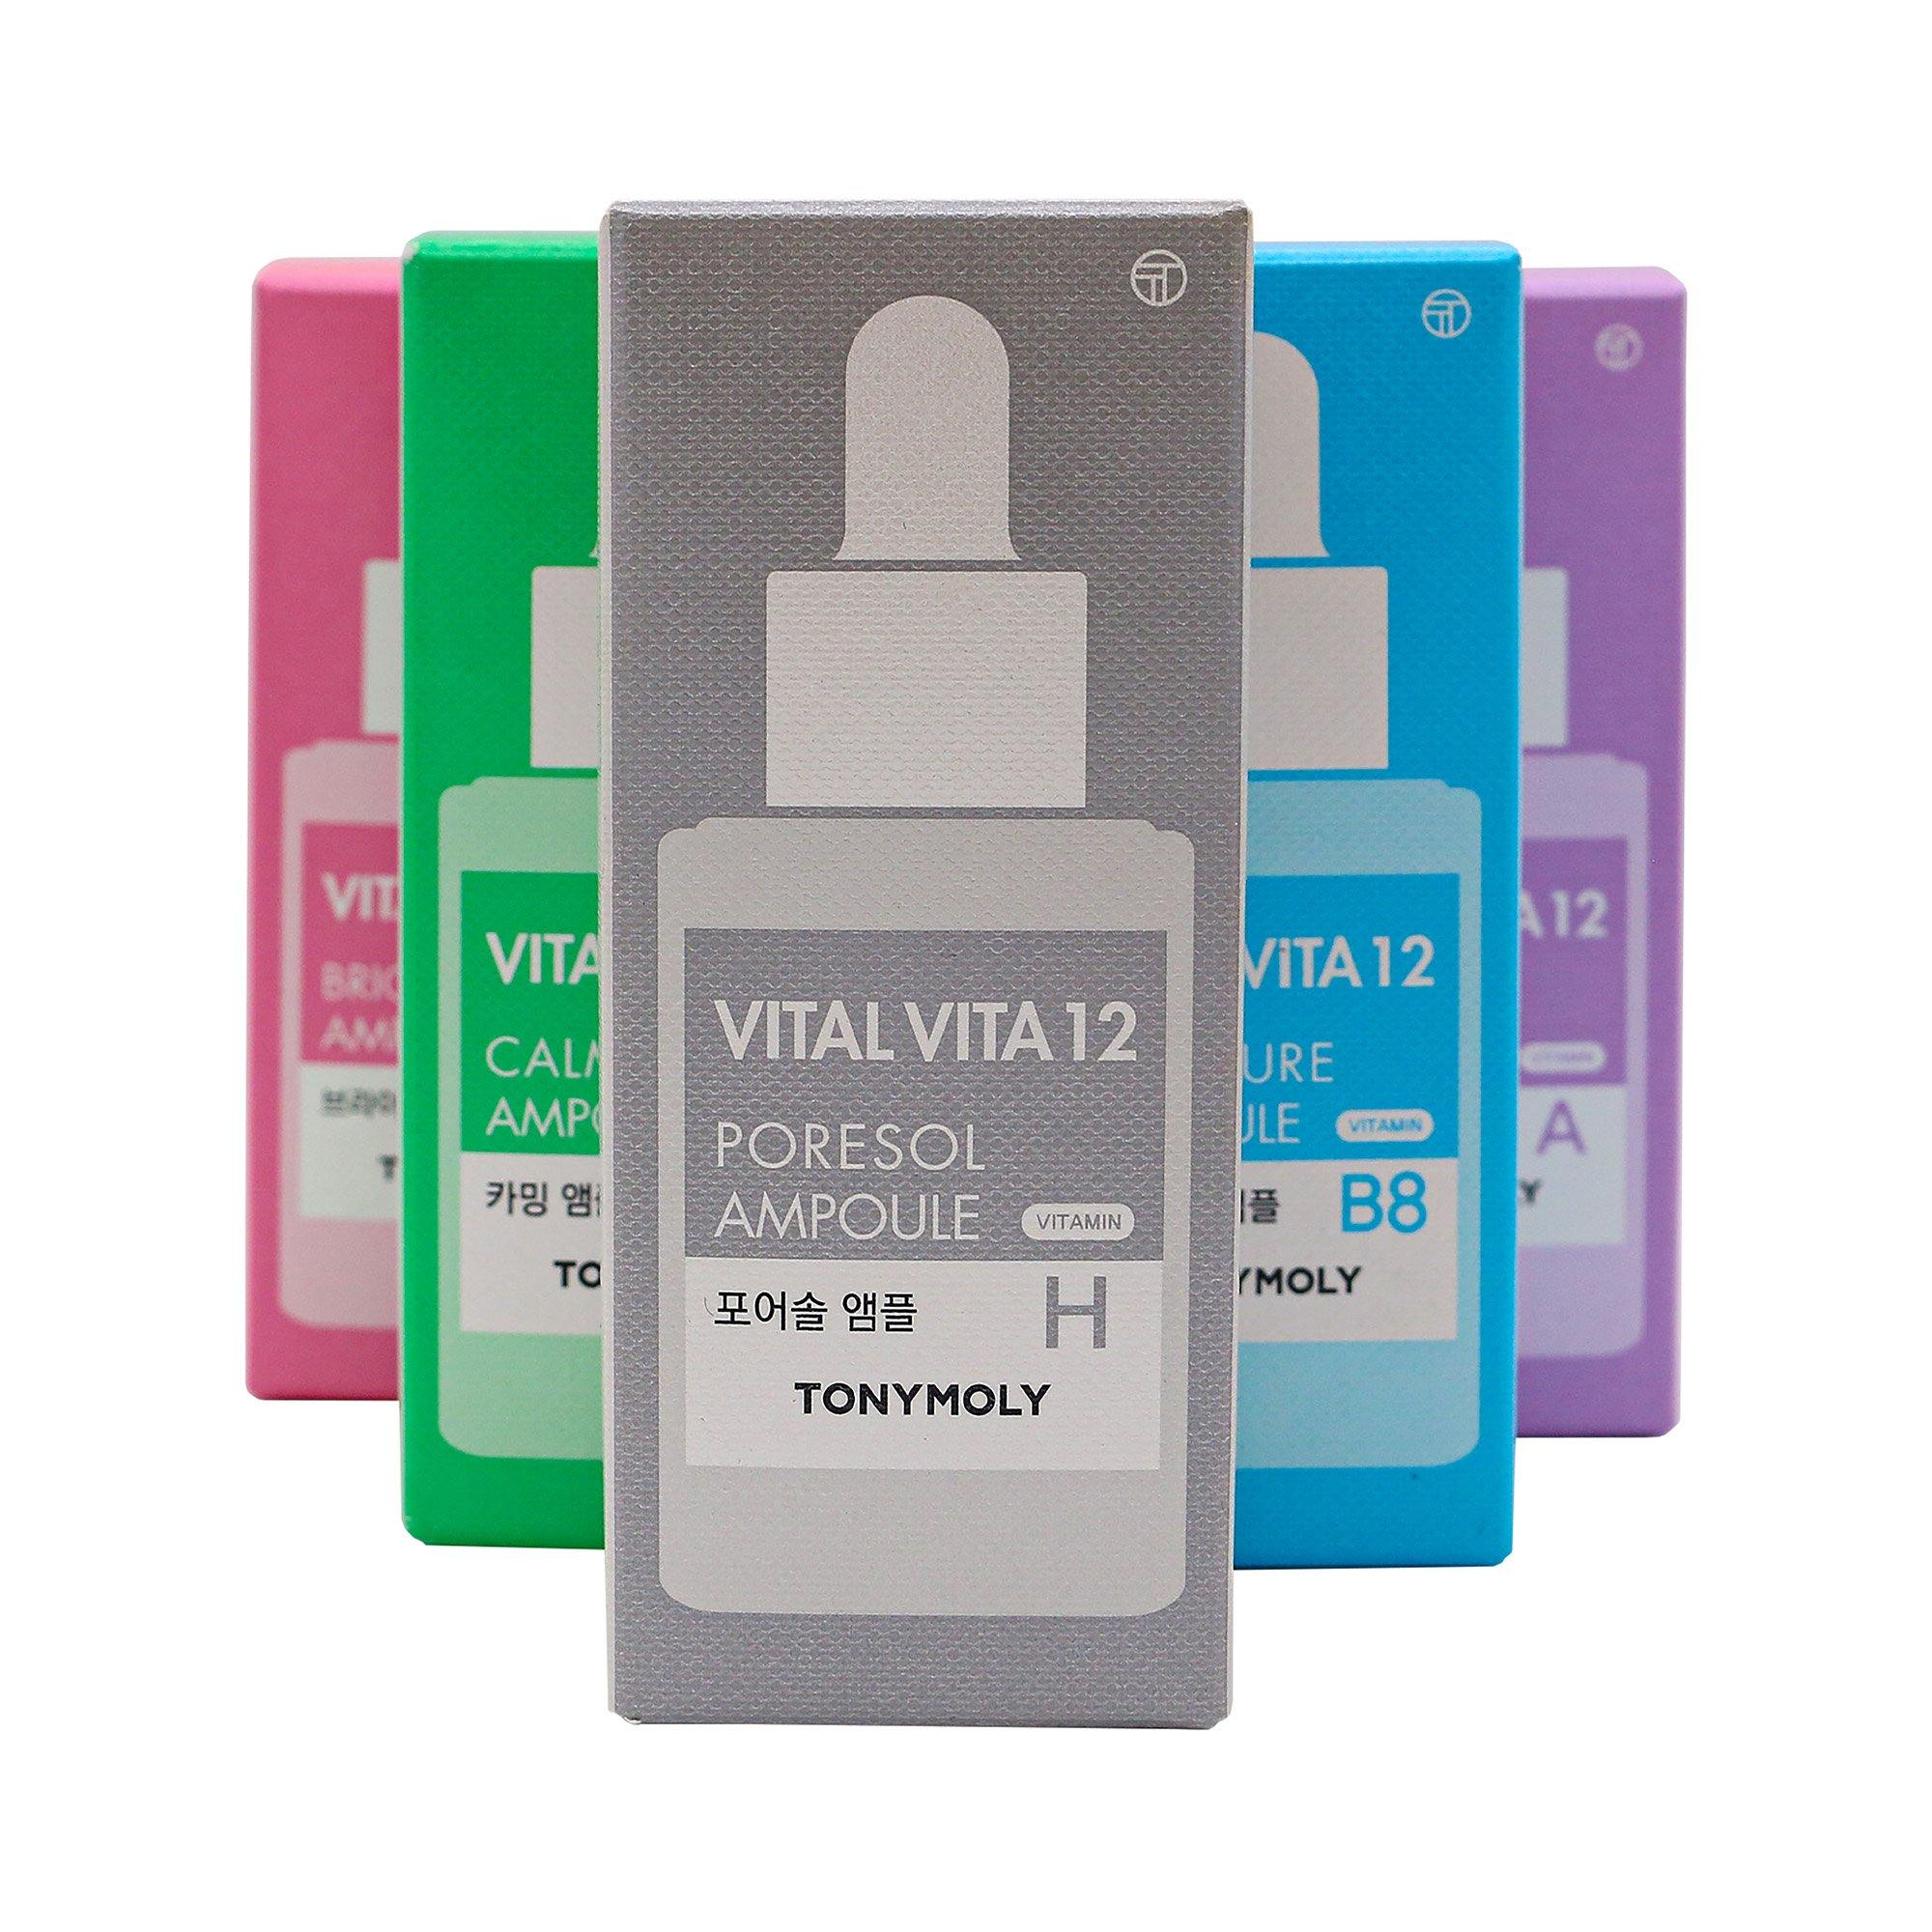 TONYMOLY Vital Vita 12 - Pore Care Ampoule 30ml - TONYMOLY OFFICIAL